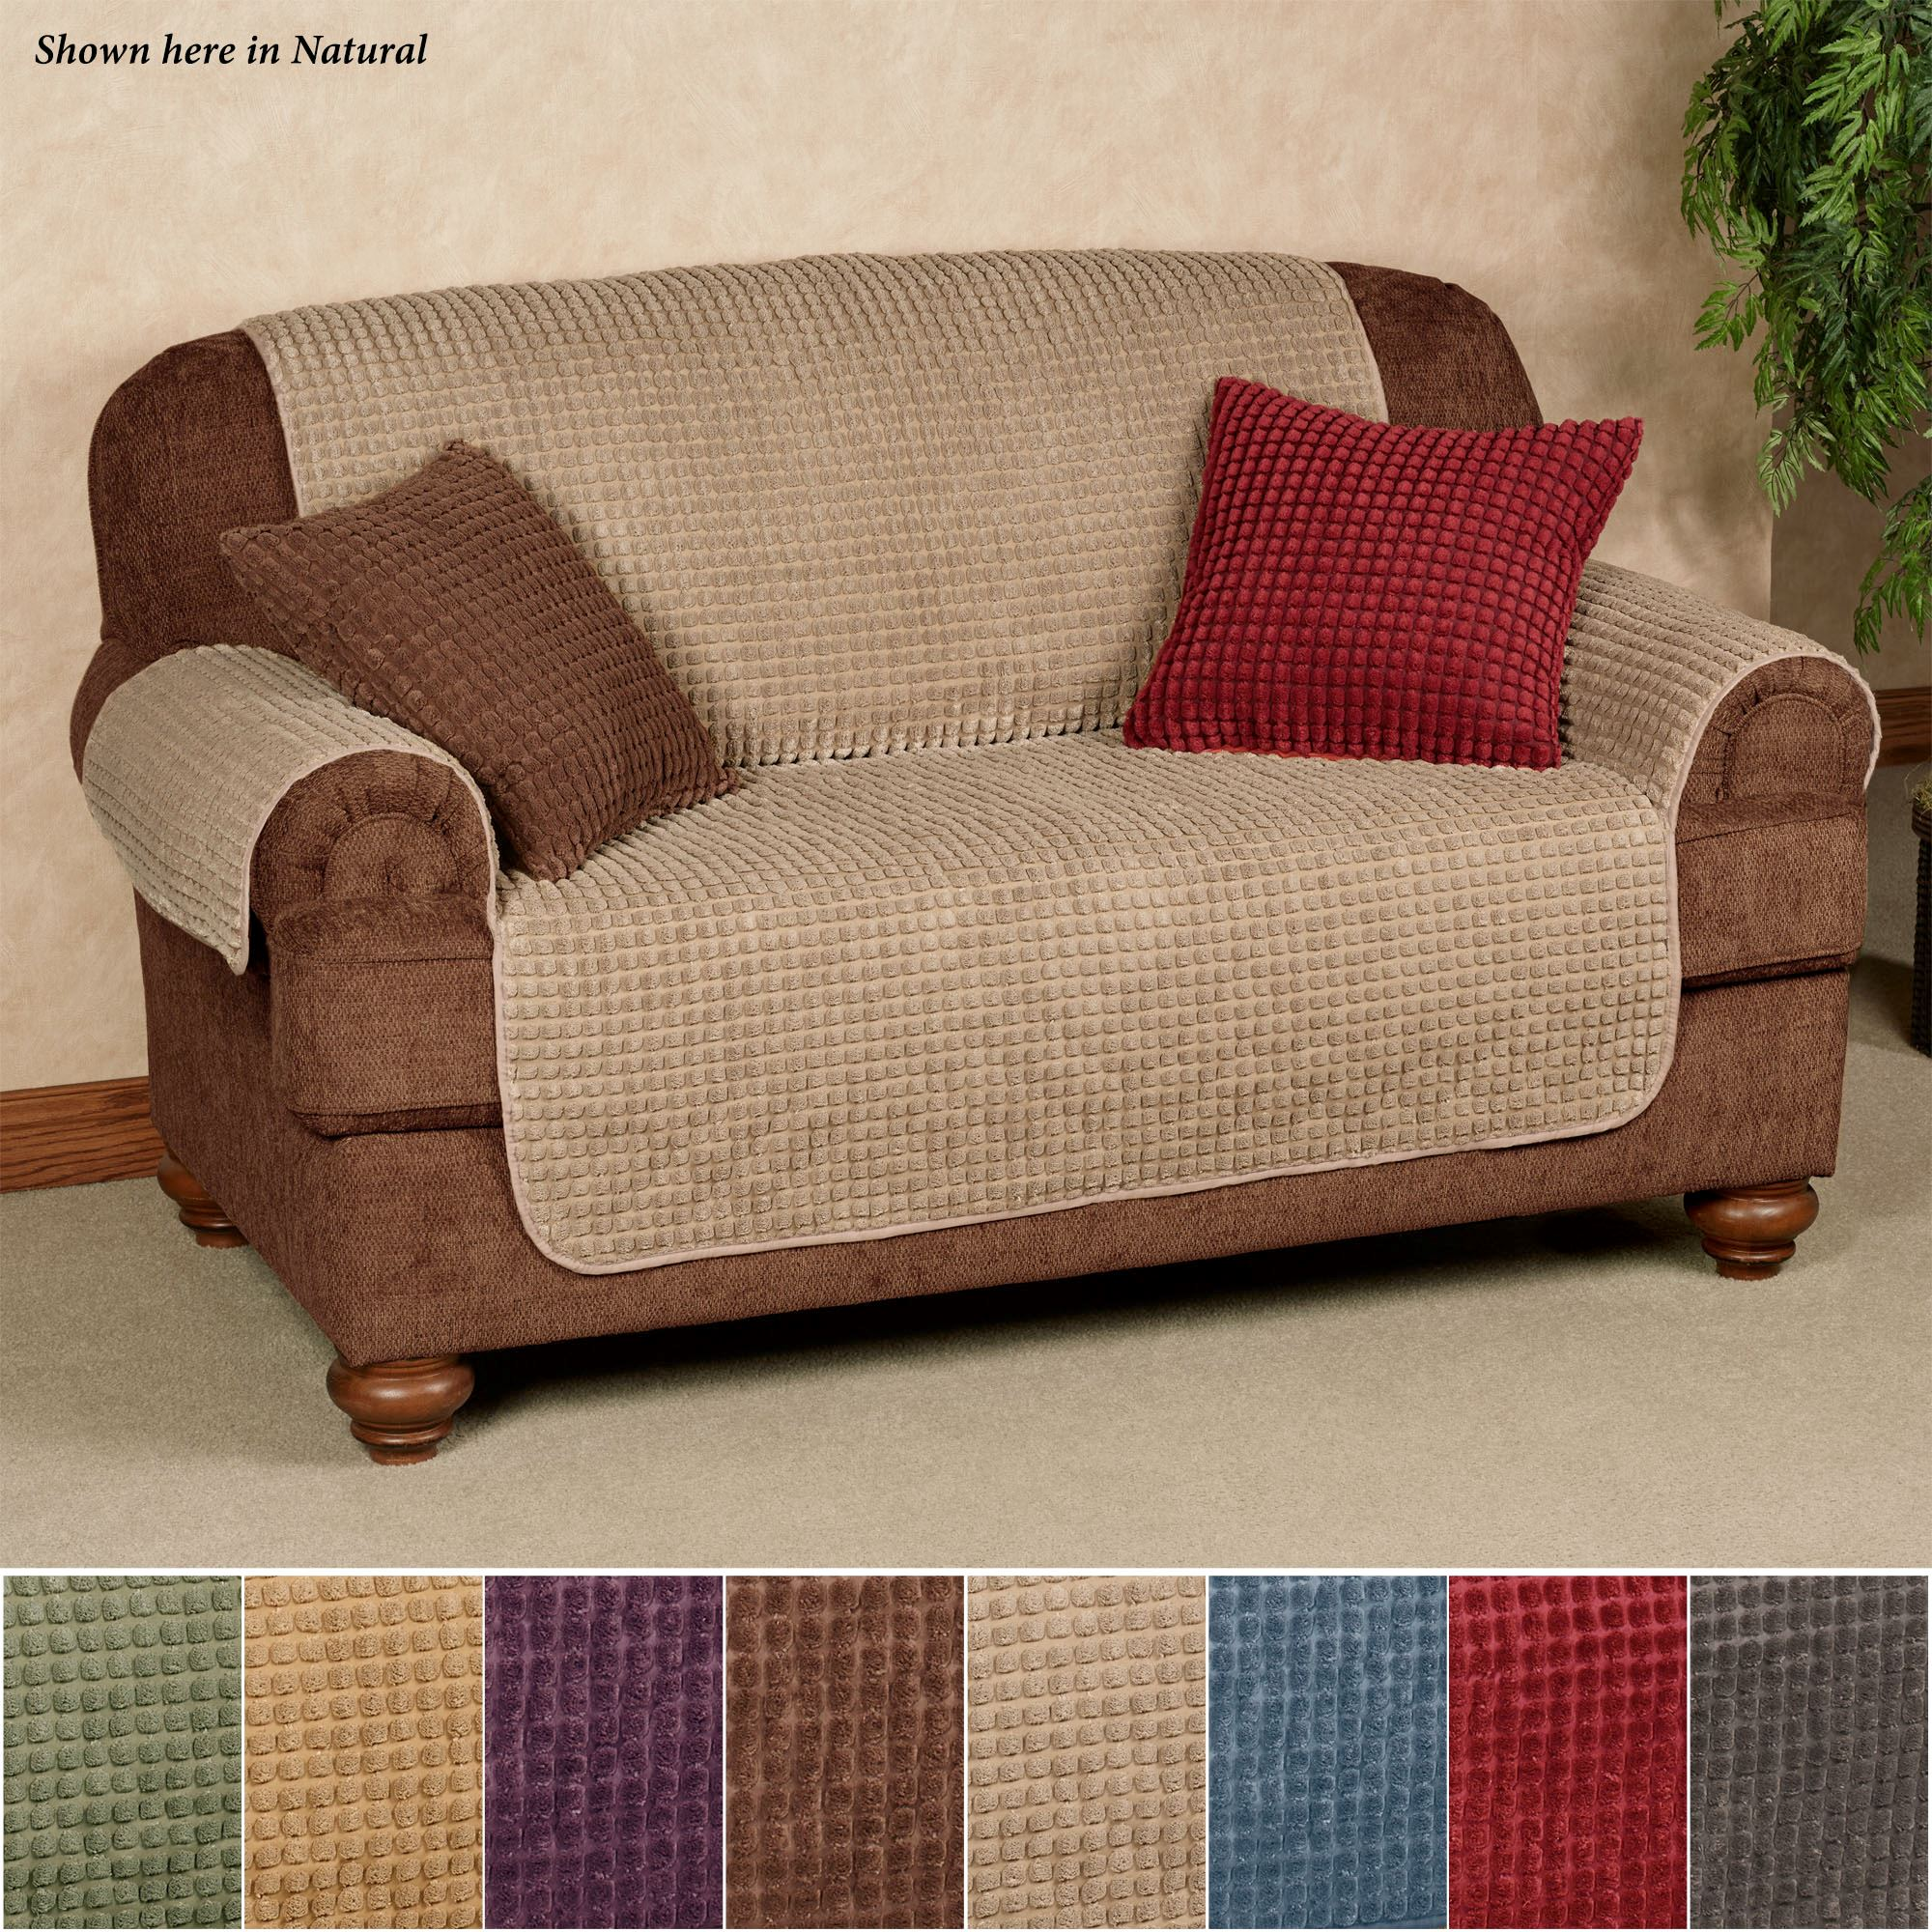 Premier Puff Loveseat And Sofa Furniture Protectors With Tuck Flaps